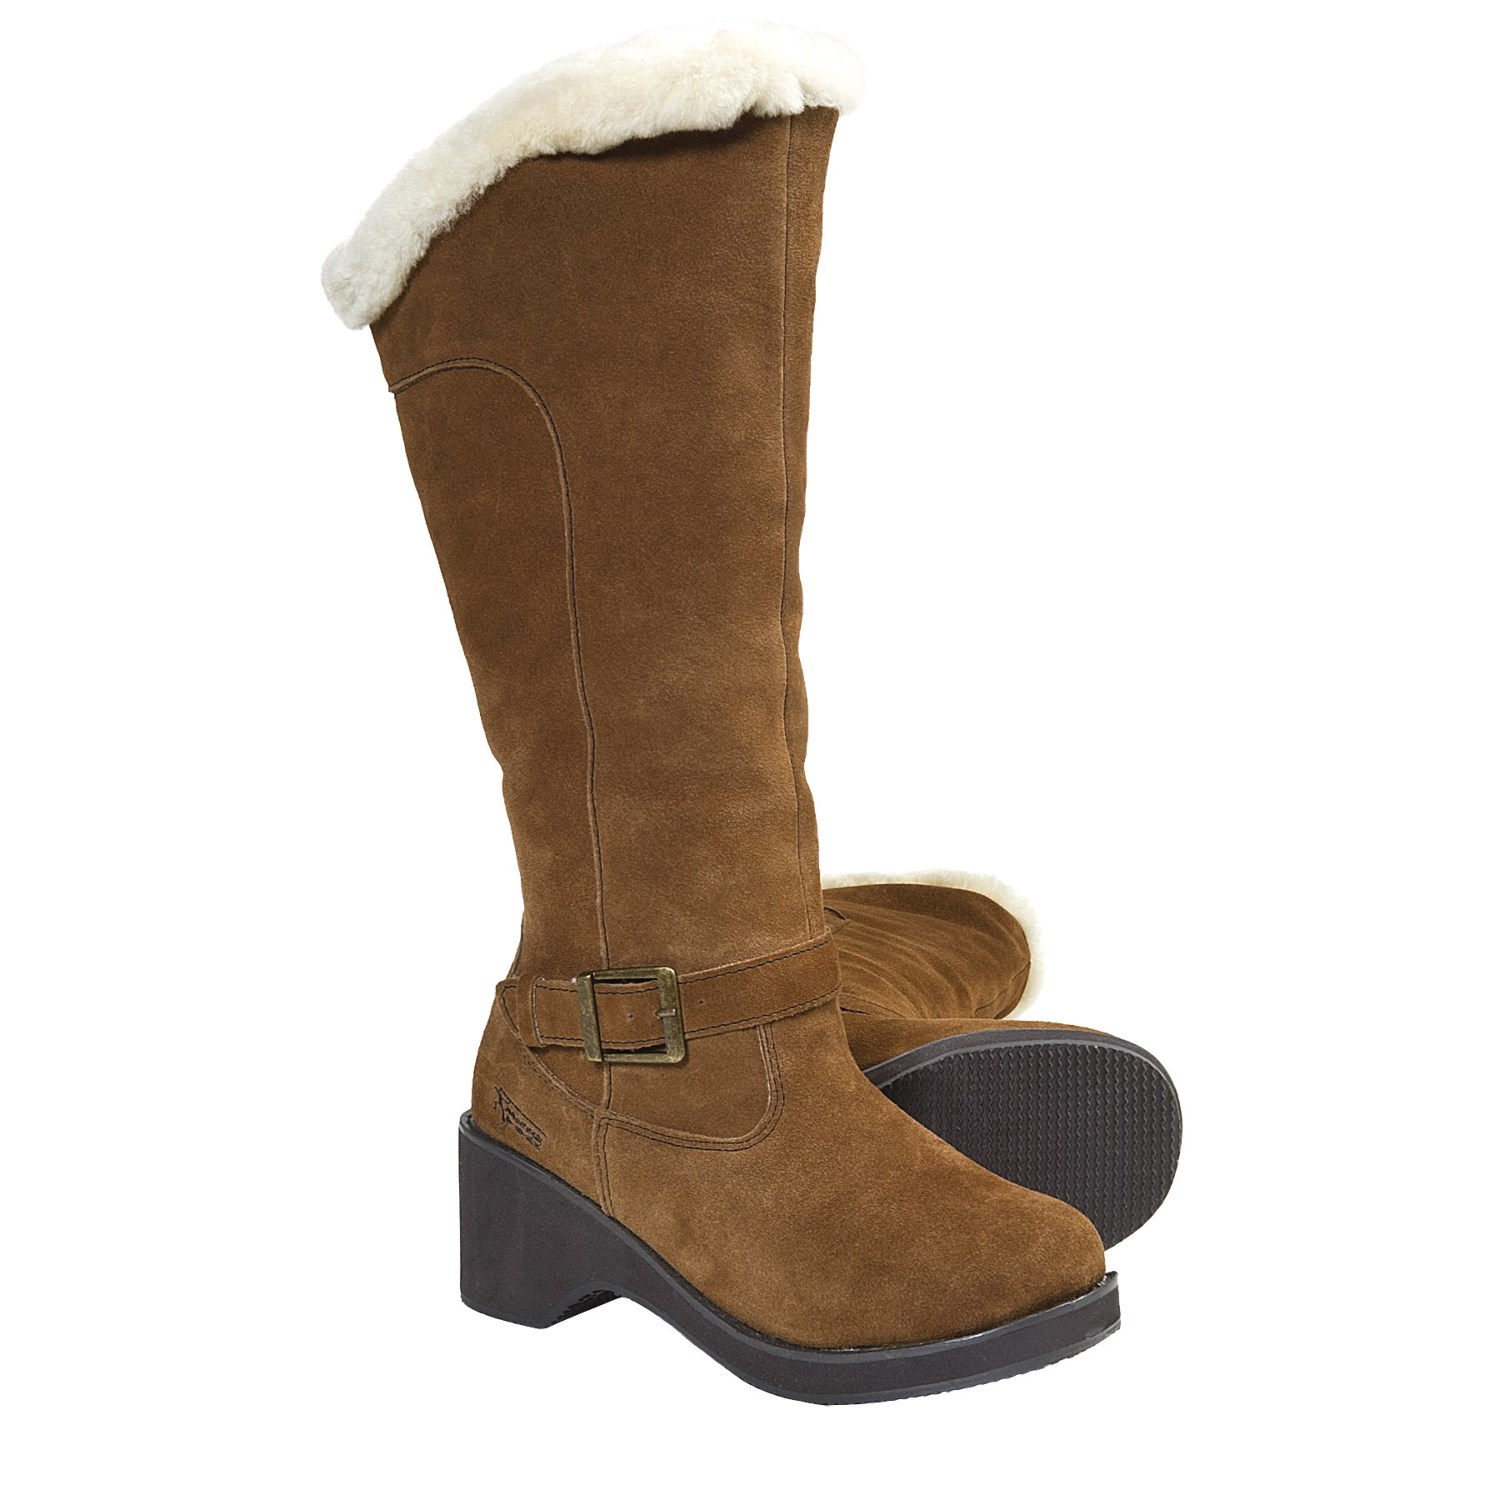 aussie dogs duchess leather boots shearling lined for